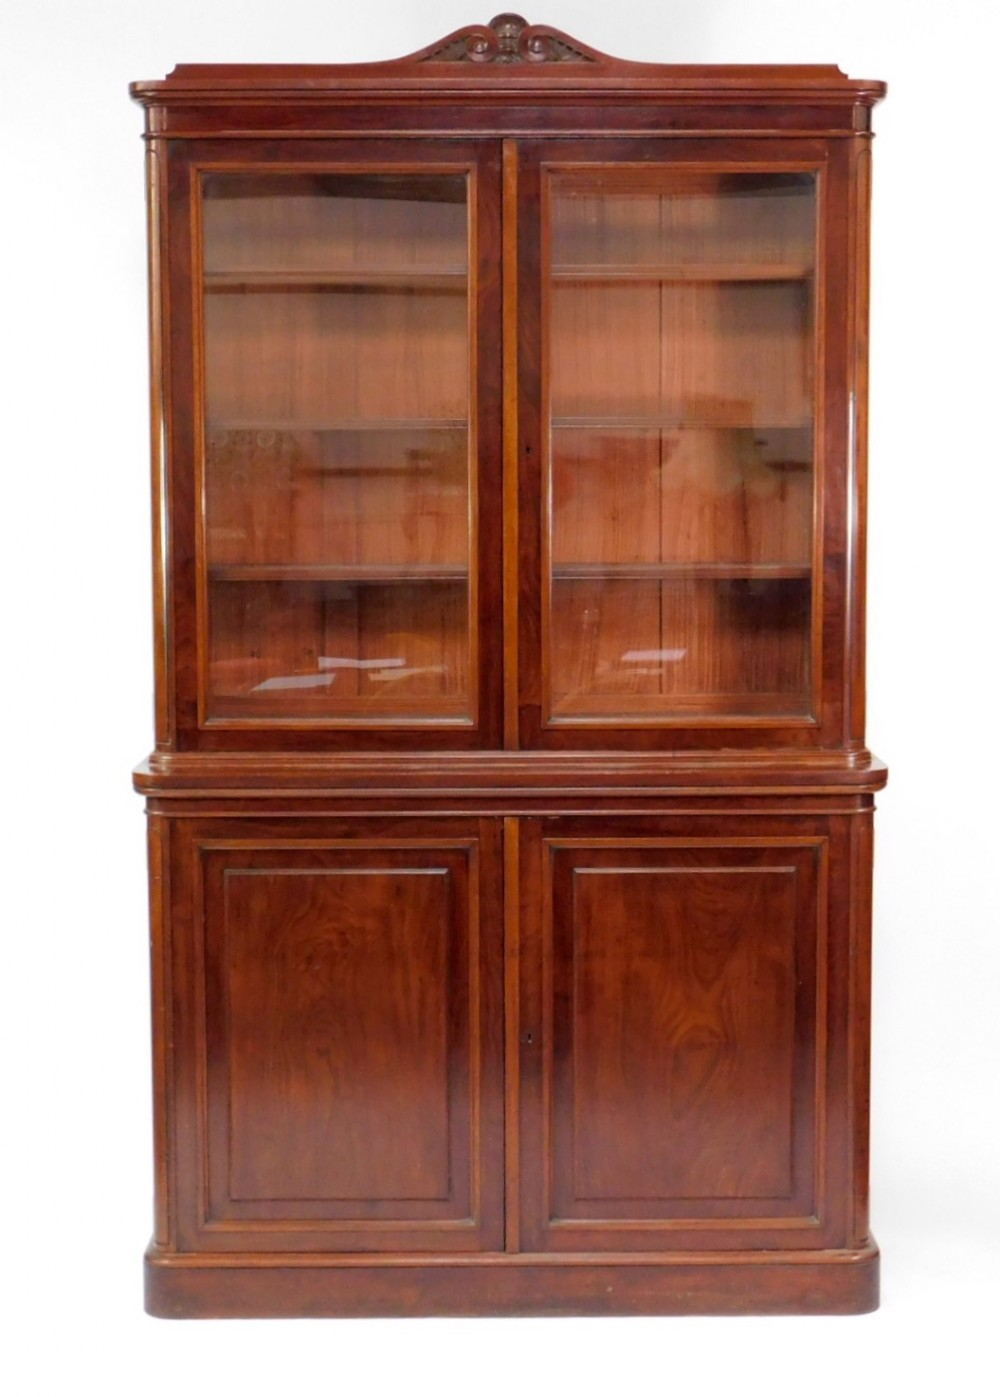 superb large late regency gillows bookcase